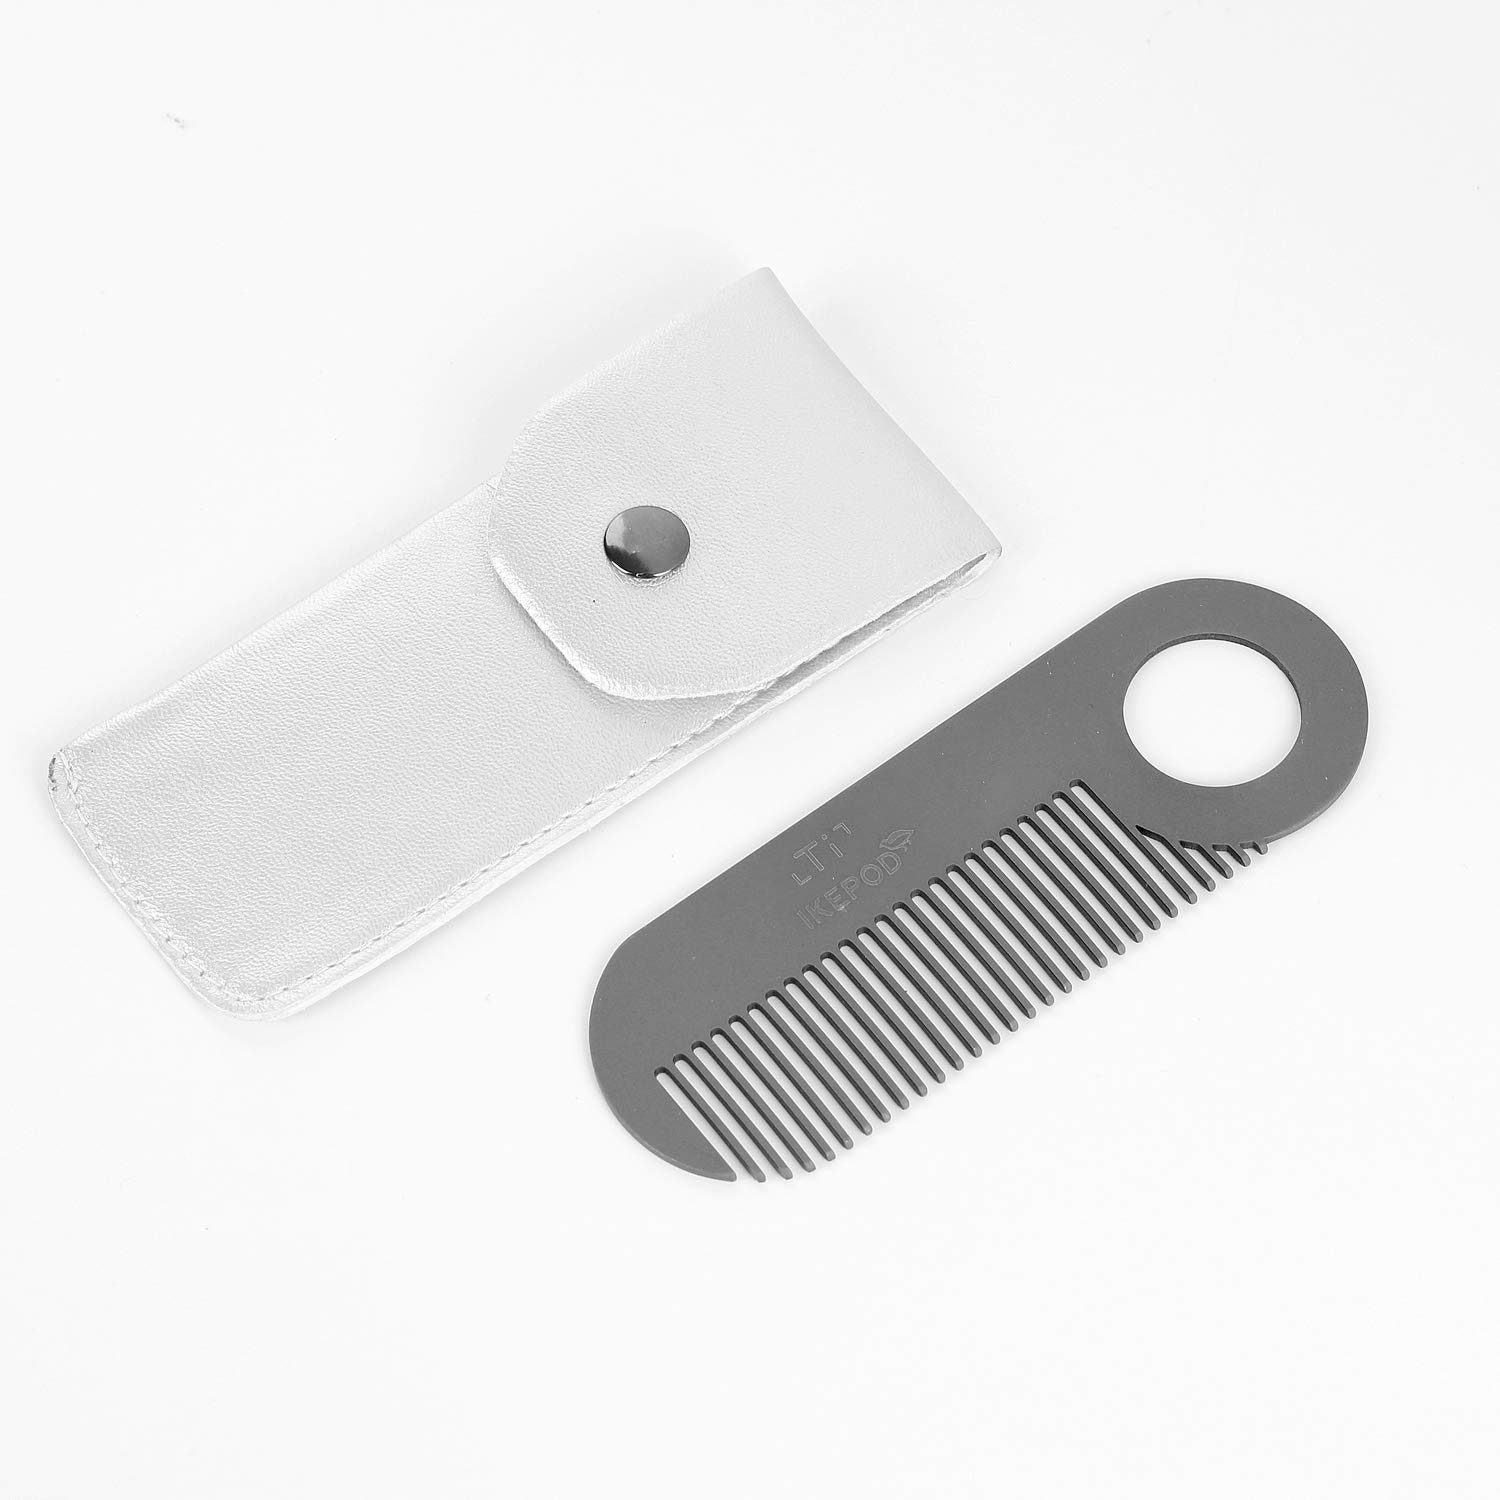 Amazon.com: IKEPOD - Peine de metal para barba de bolsillo ...